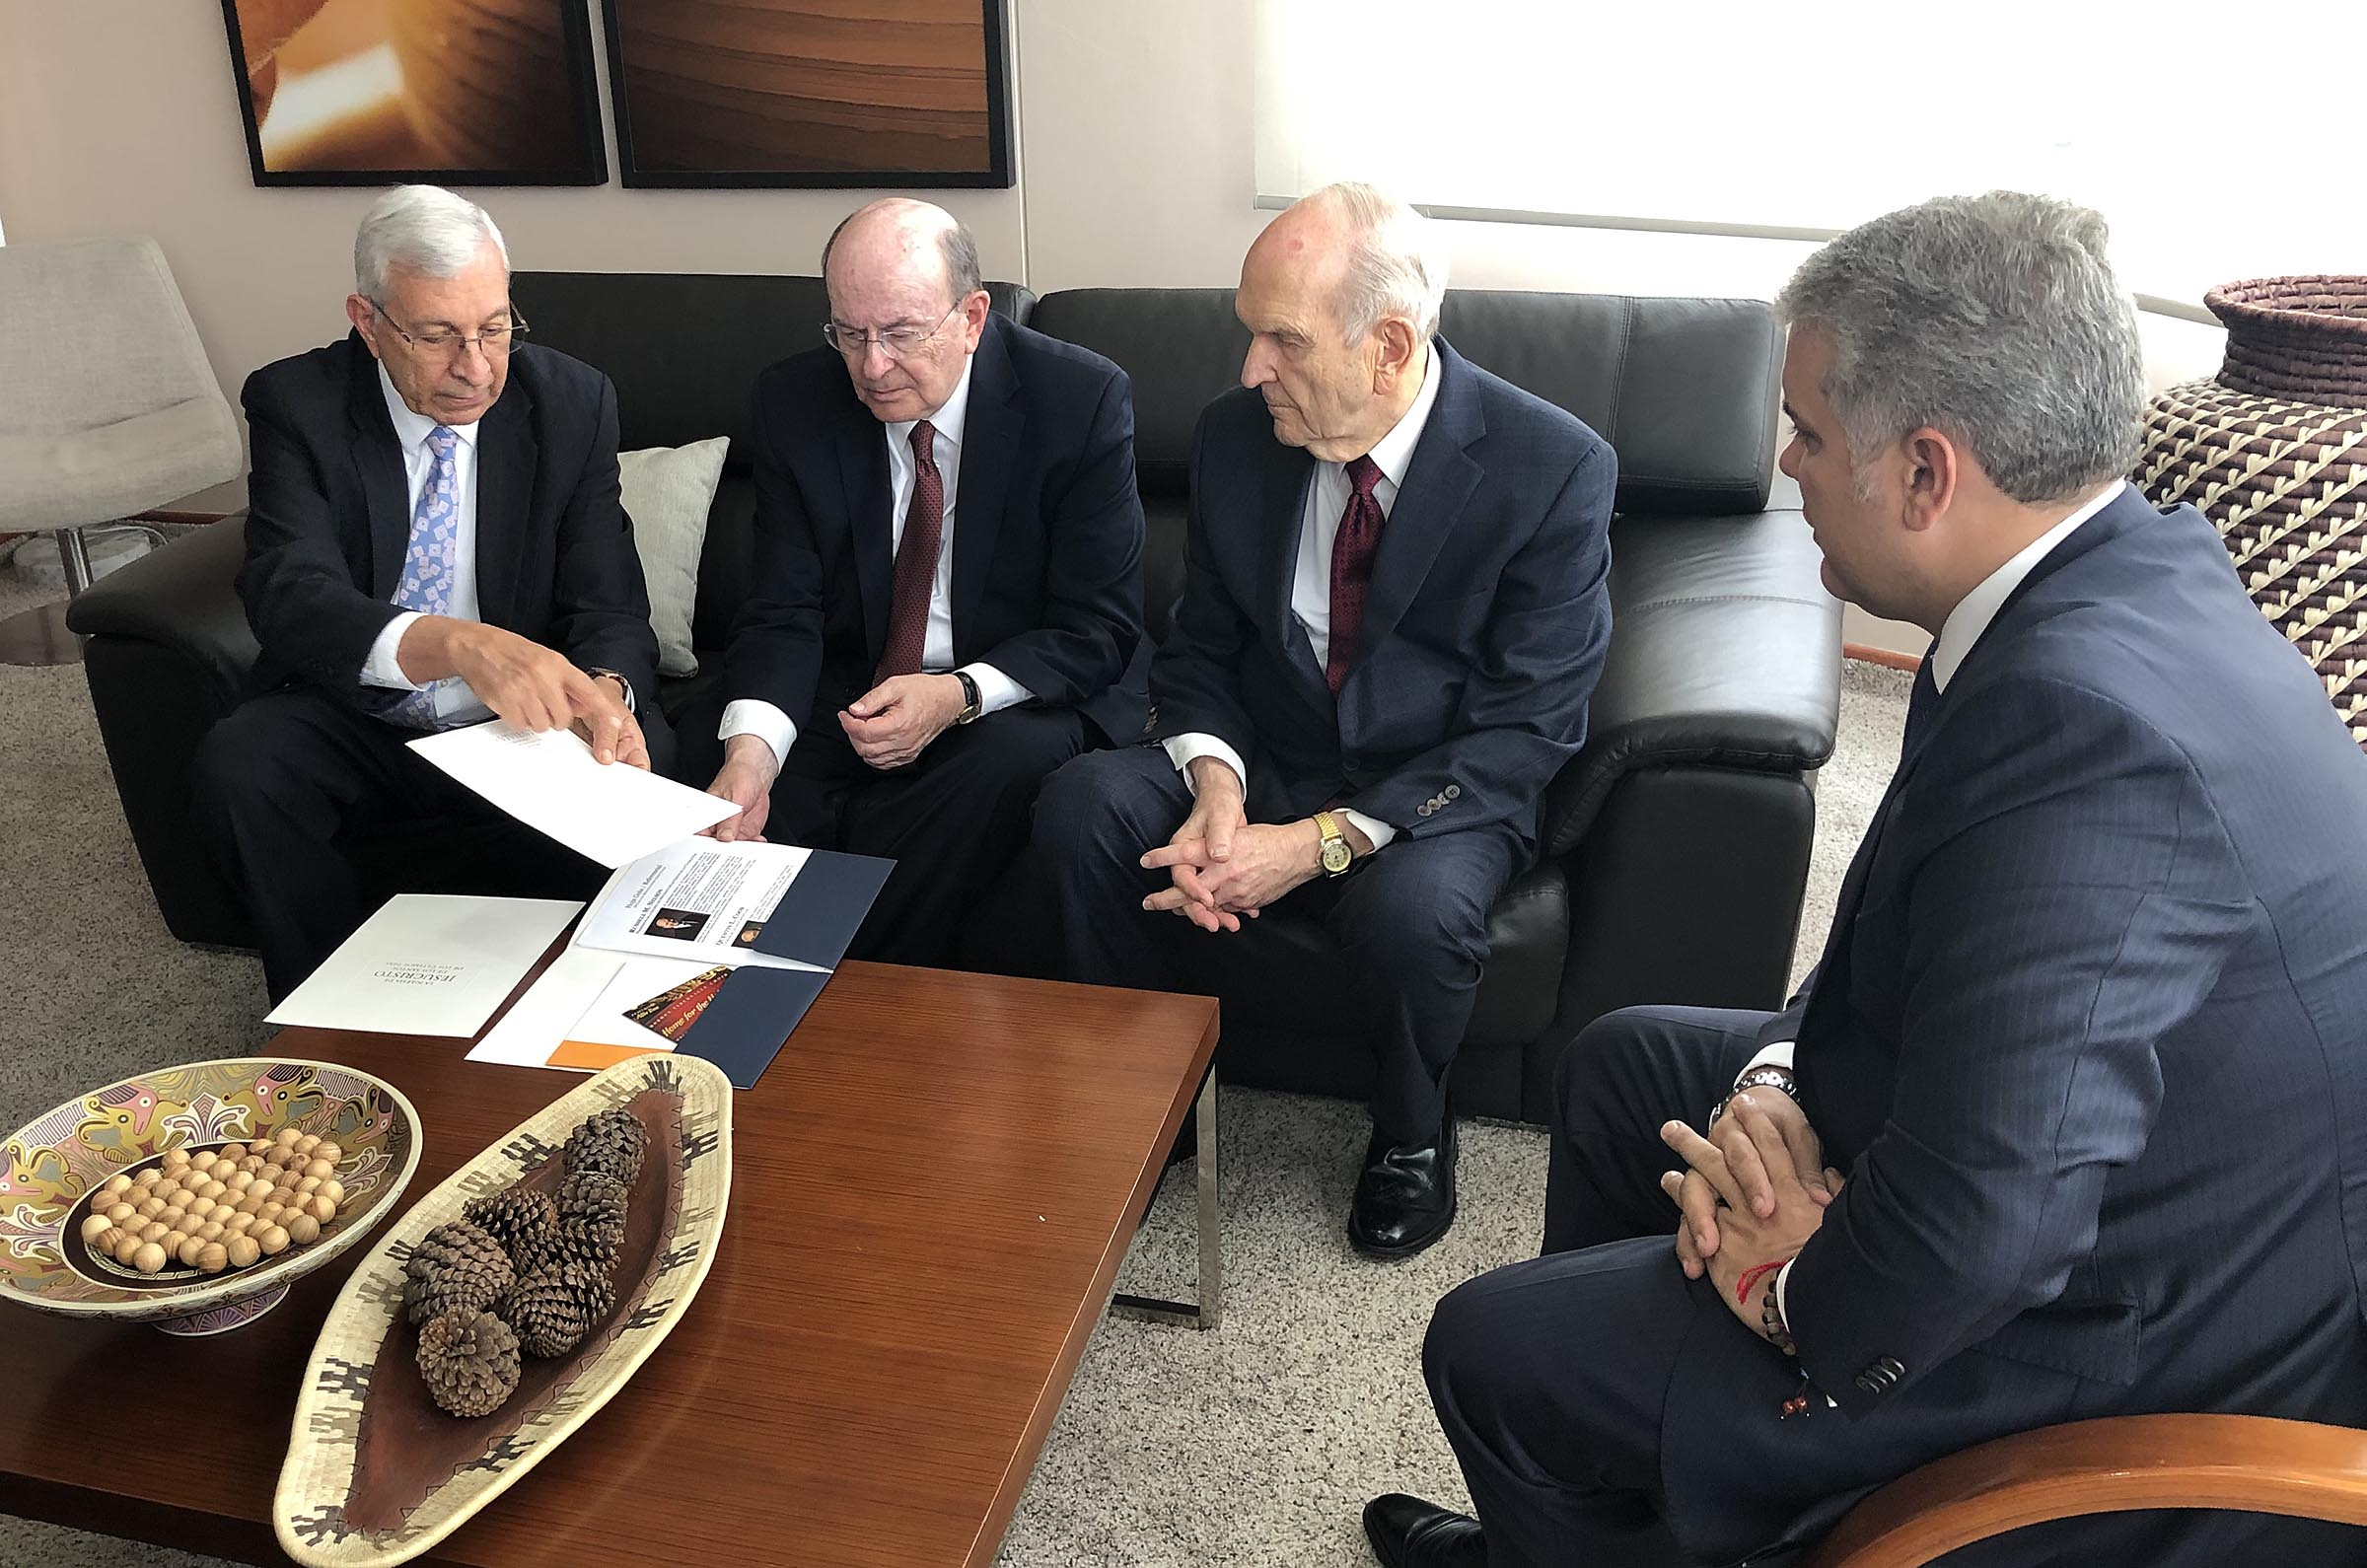 From left, Elder Enrique R. Falabella, General Authority Seventy, Elder Quentin L. Cook of the Quorum of the Twelve Apostles and President Russell M. Nelson of The Church of Jesus Christ of Latter-day Saints meet with Colombia President Iván Duque Márquez, right, in Bogota, Colombia, Monday, Aug. 26, 2019.